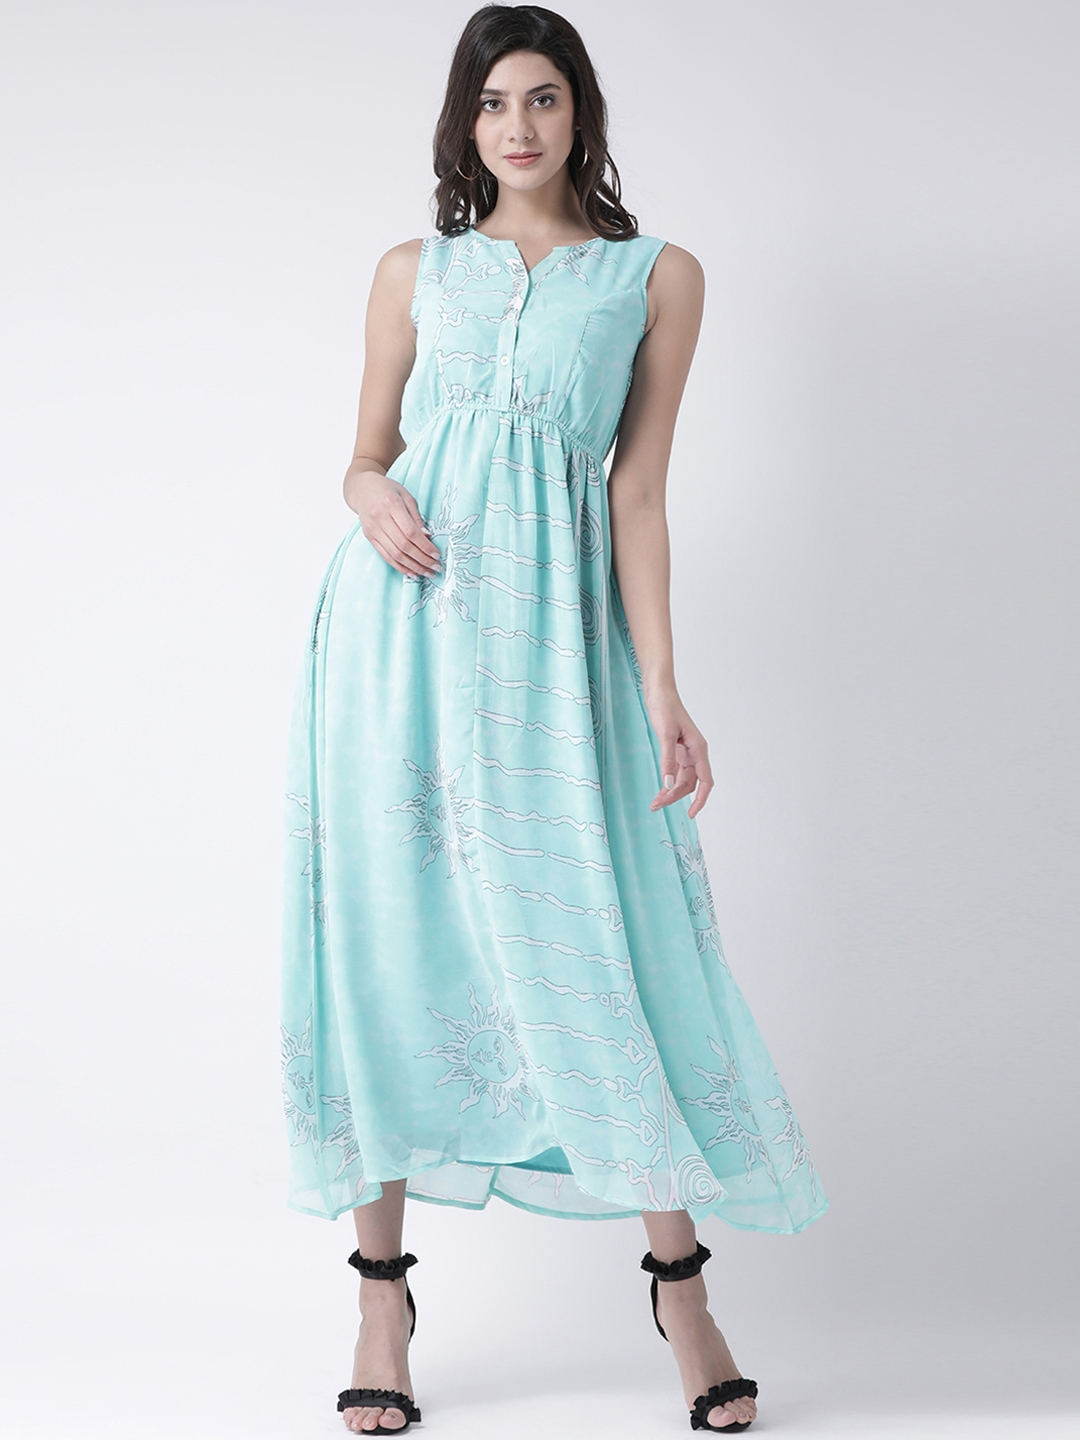 The Vanca Women Turquoise Blue Printed Fit and Flare Dress